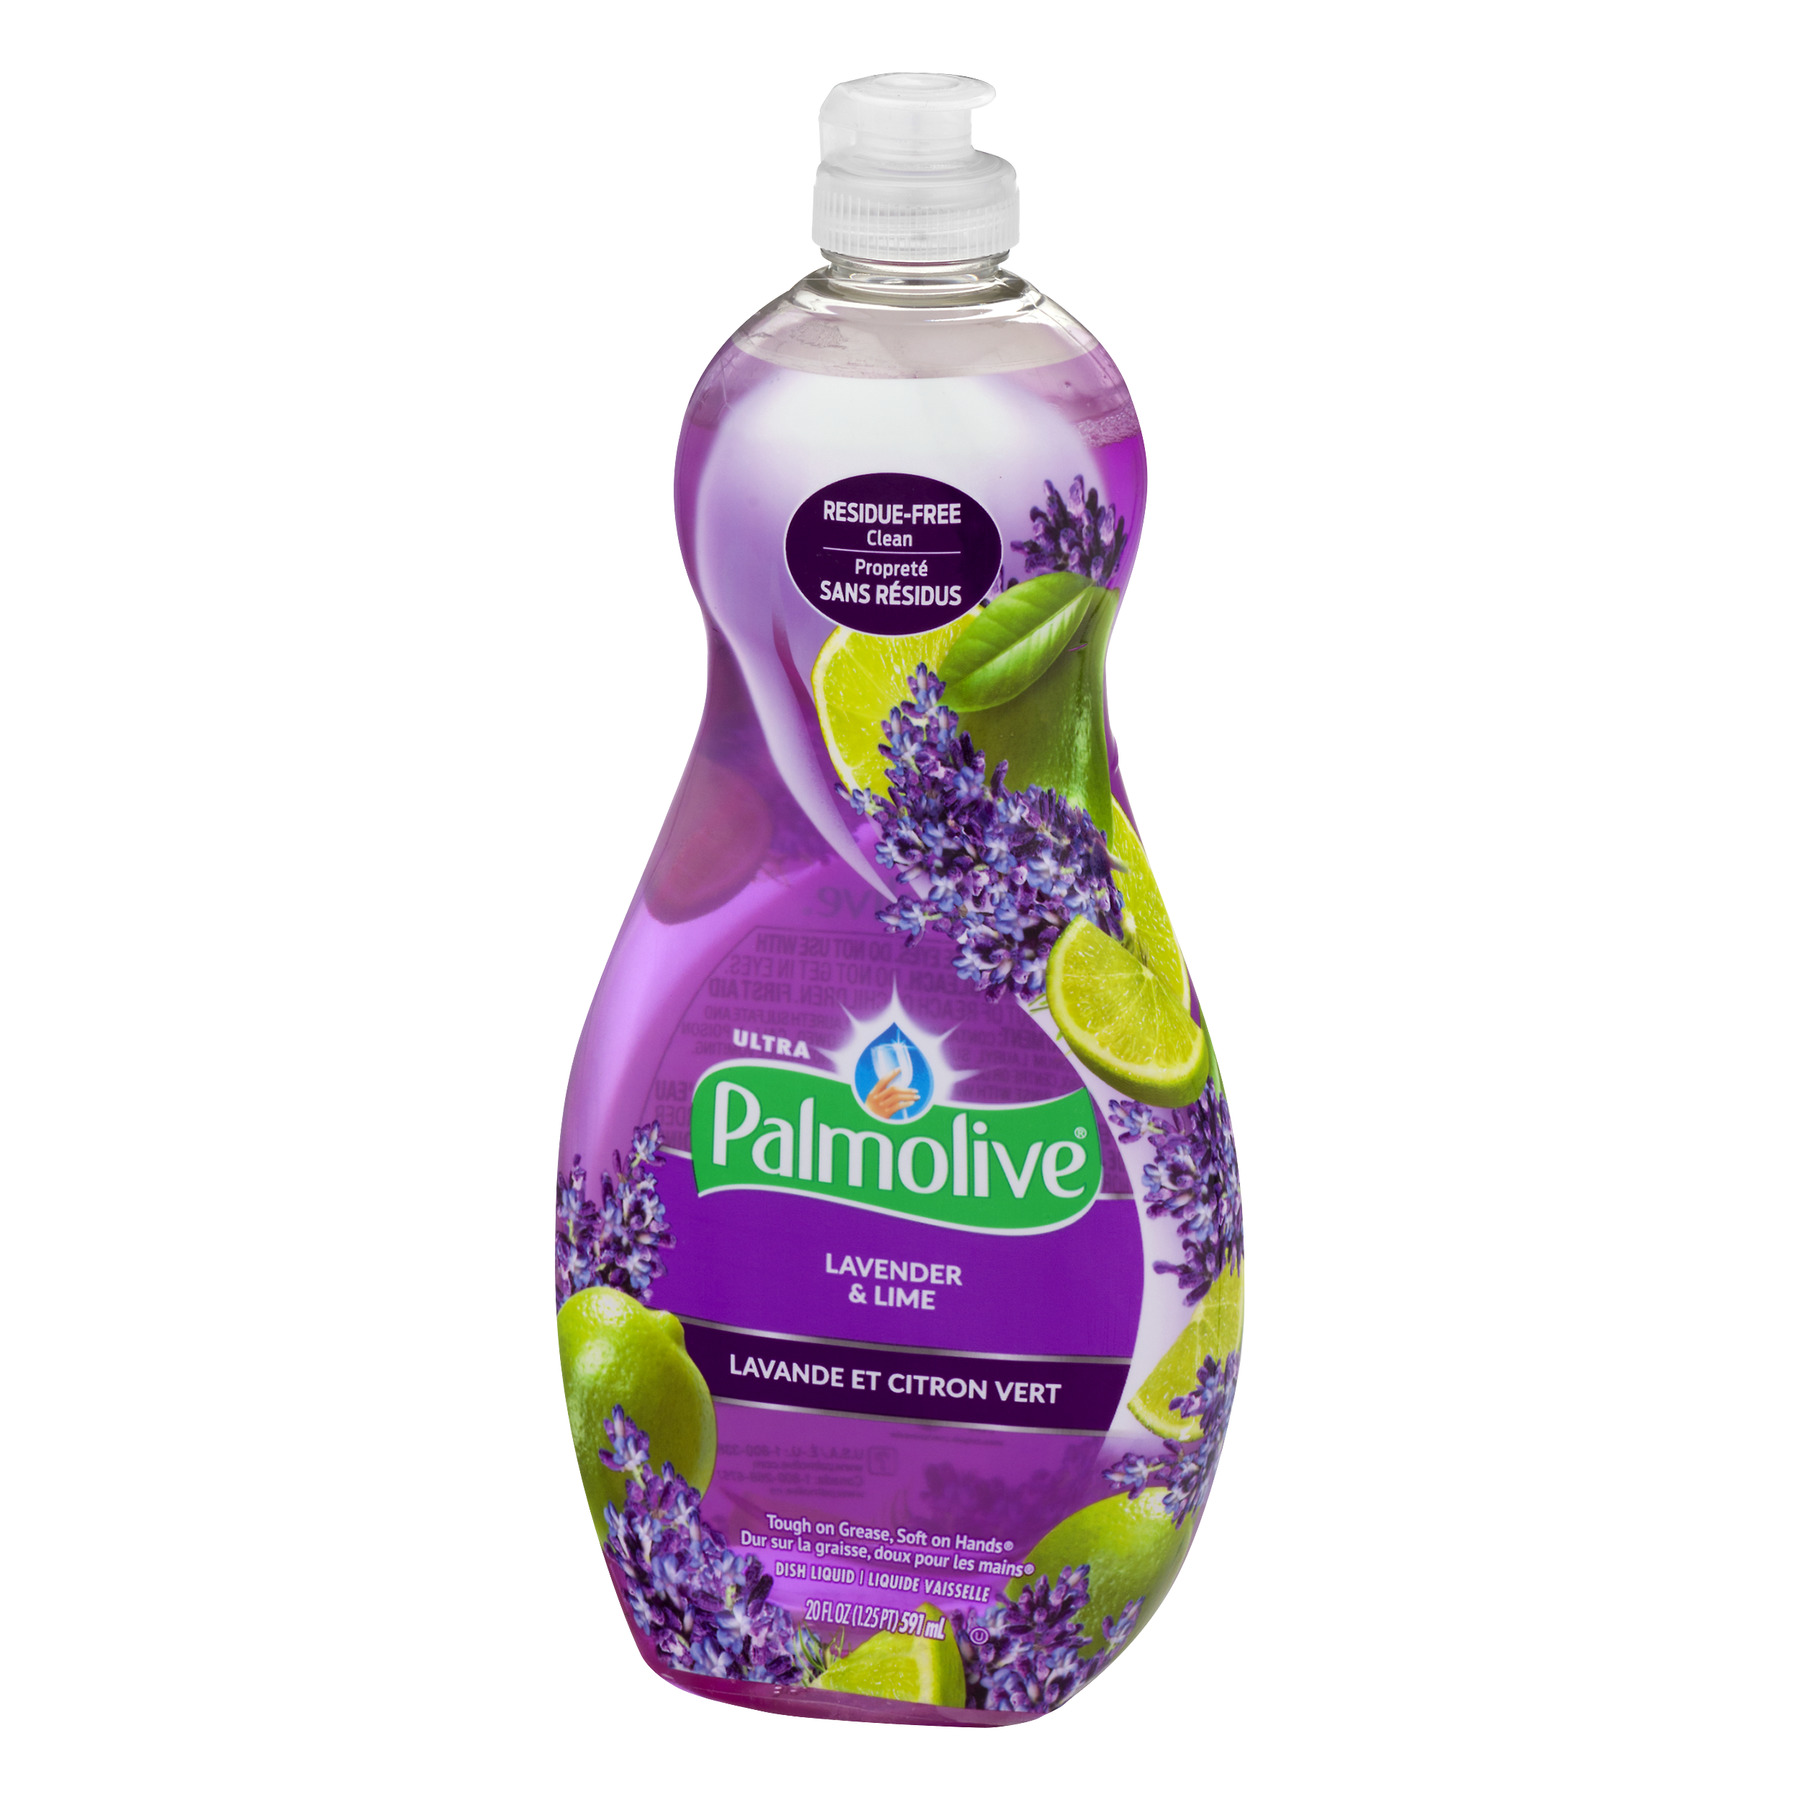 (4 pack) Palmolive Ultra Dishwashing Liquid Dish Soap, Lavender and Lime - 20 fluid ounce